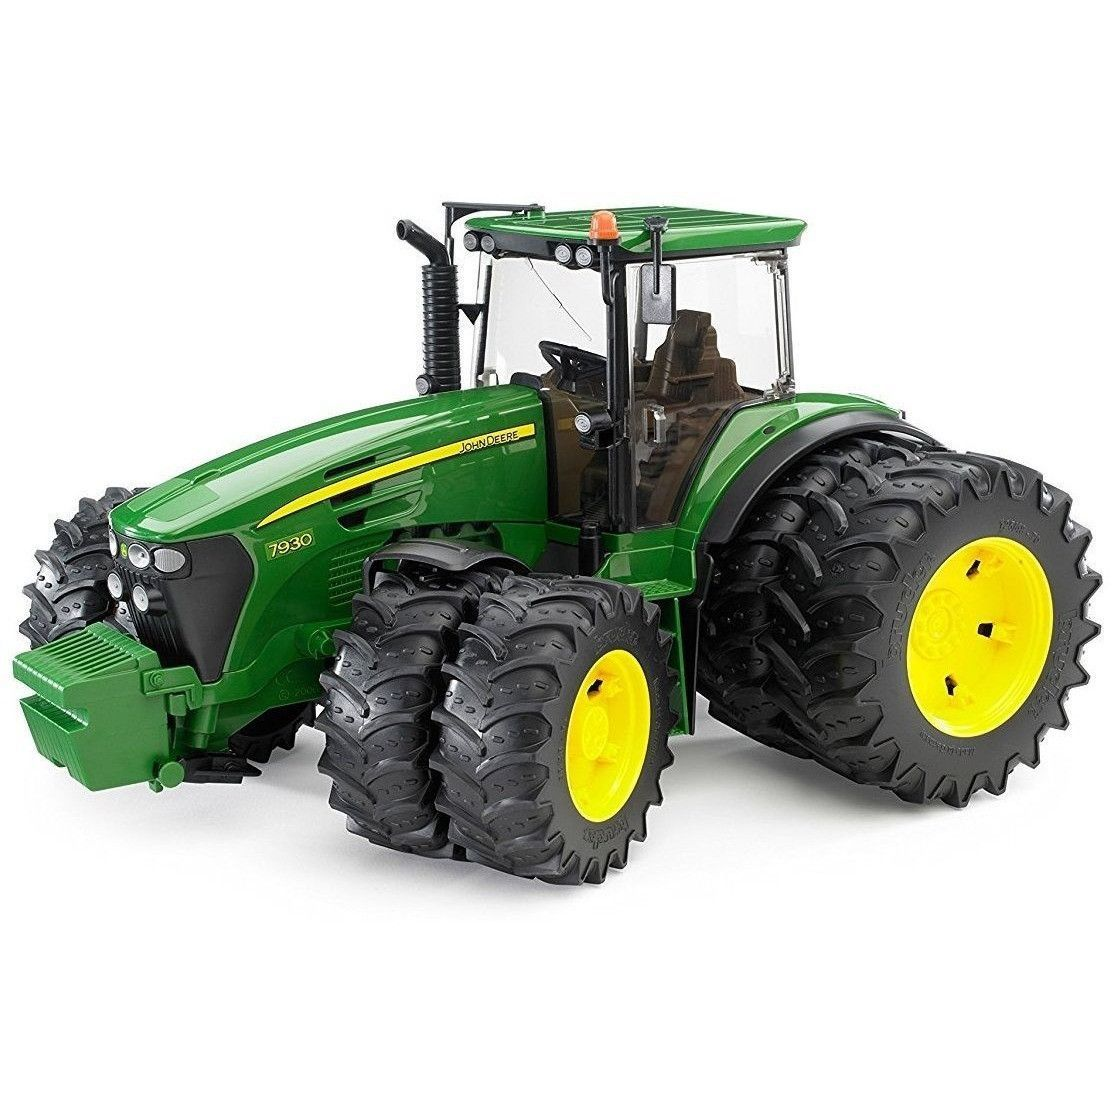 Bruder Toys John Deere 7930 Tractor with Double Wheels 09808 NEW ...